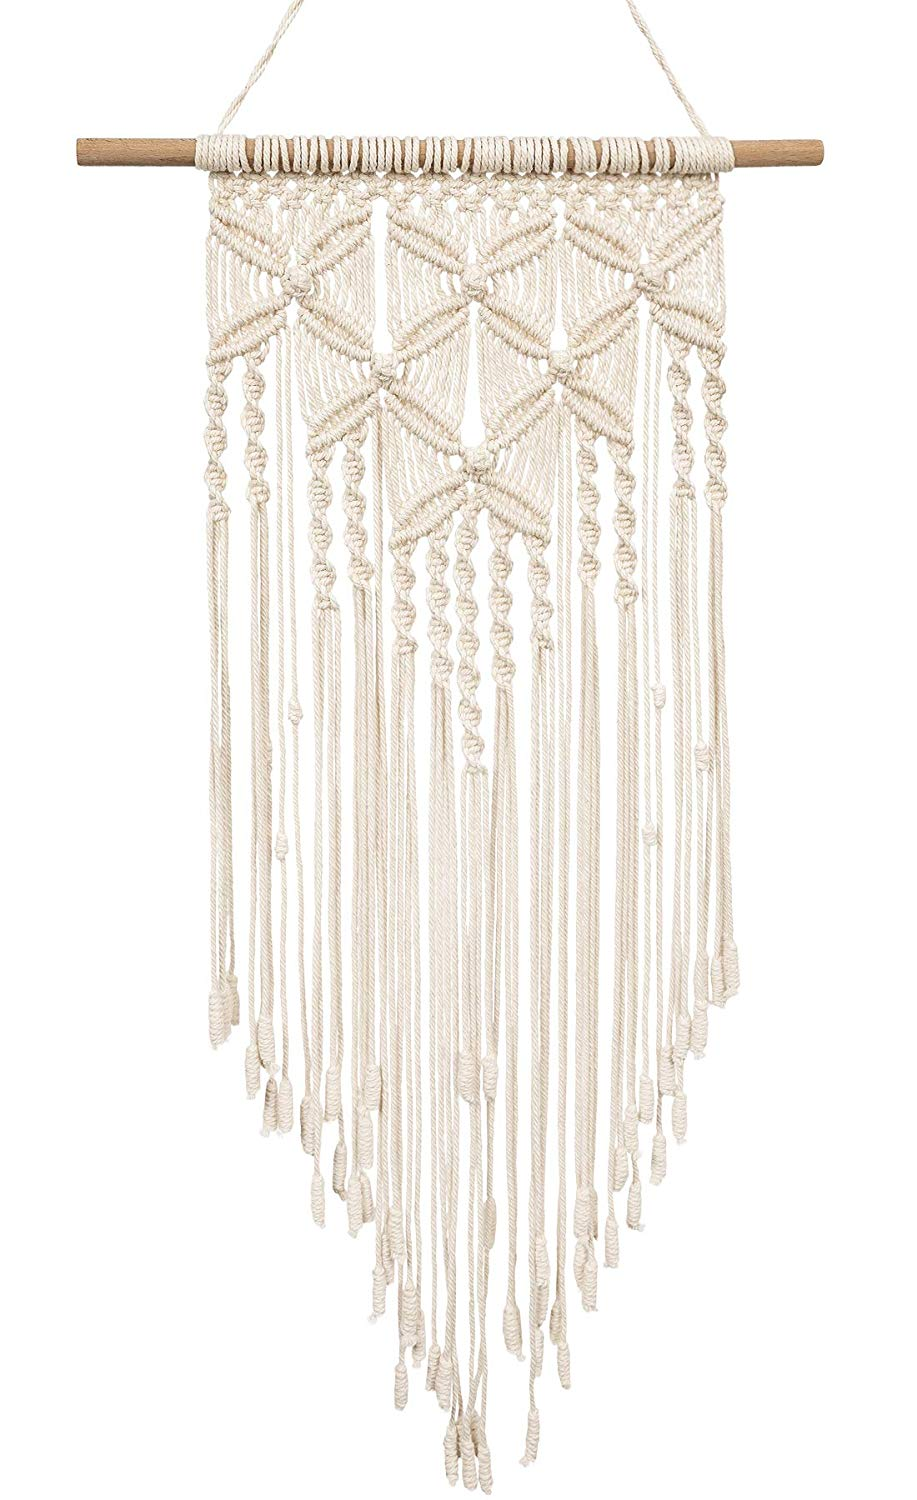 Macrame Wall Hanging by TIMEYARD